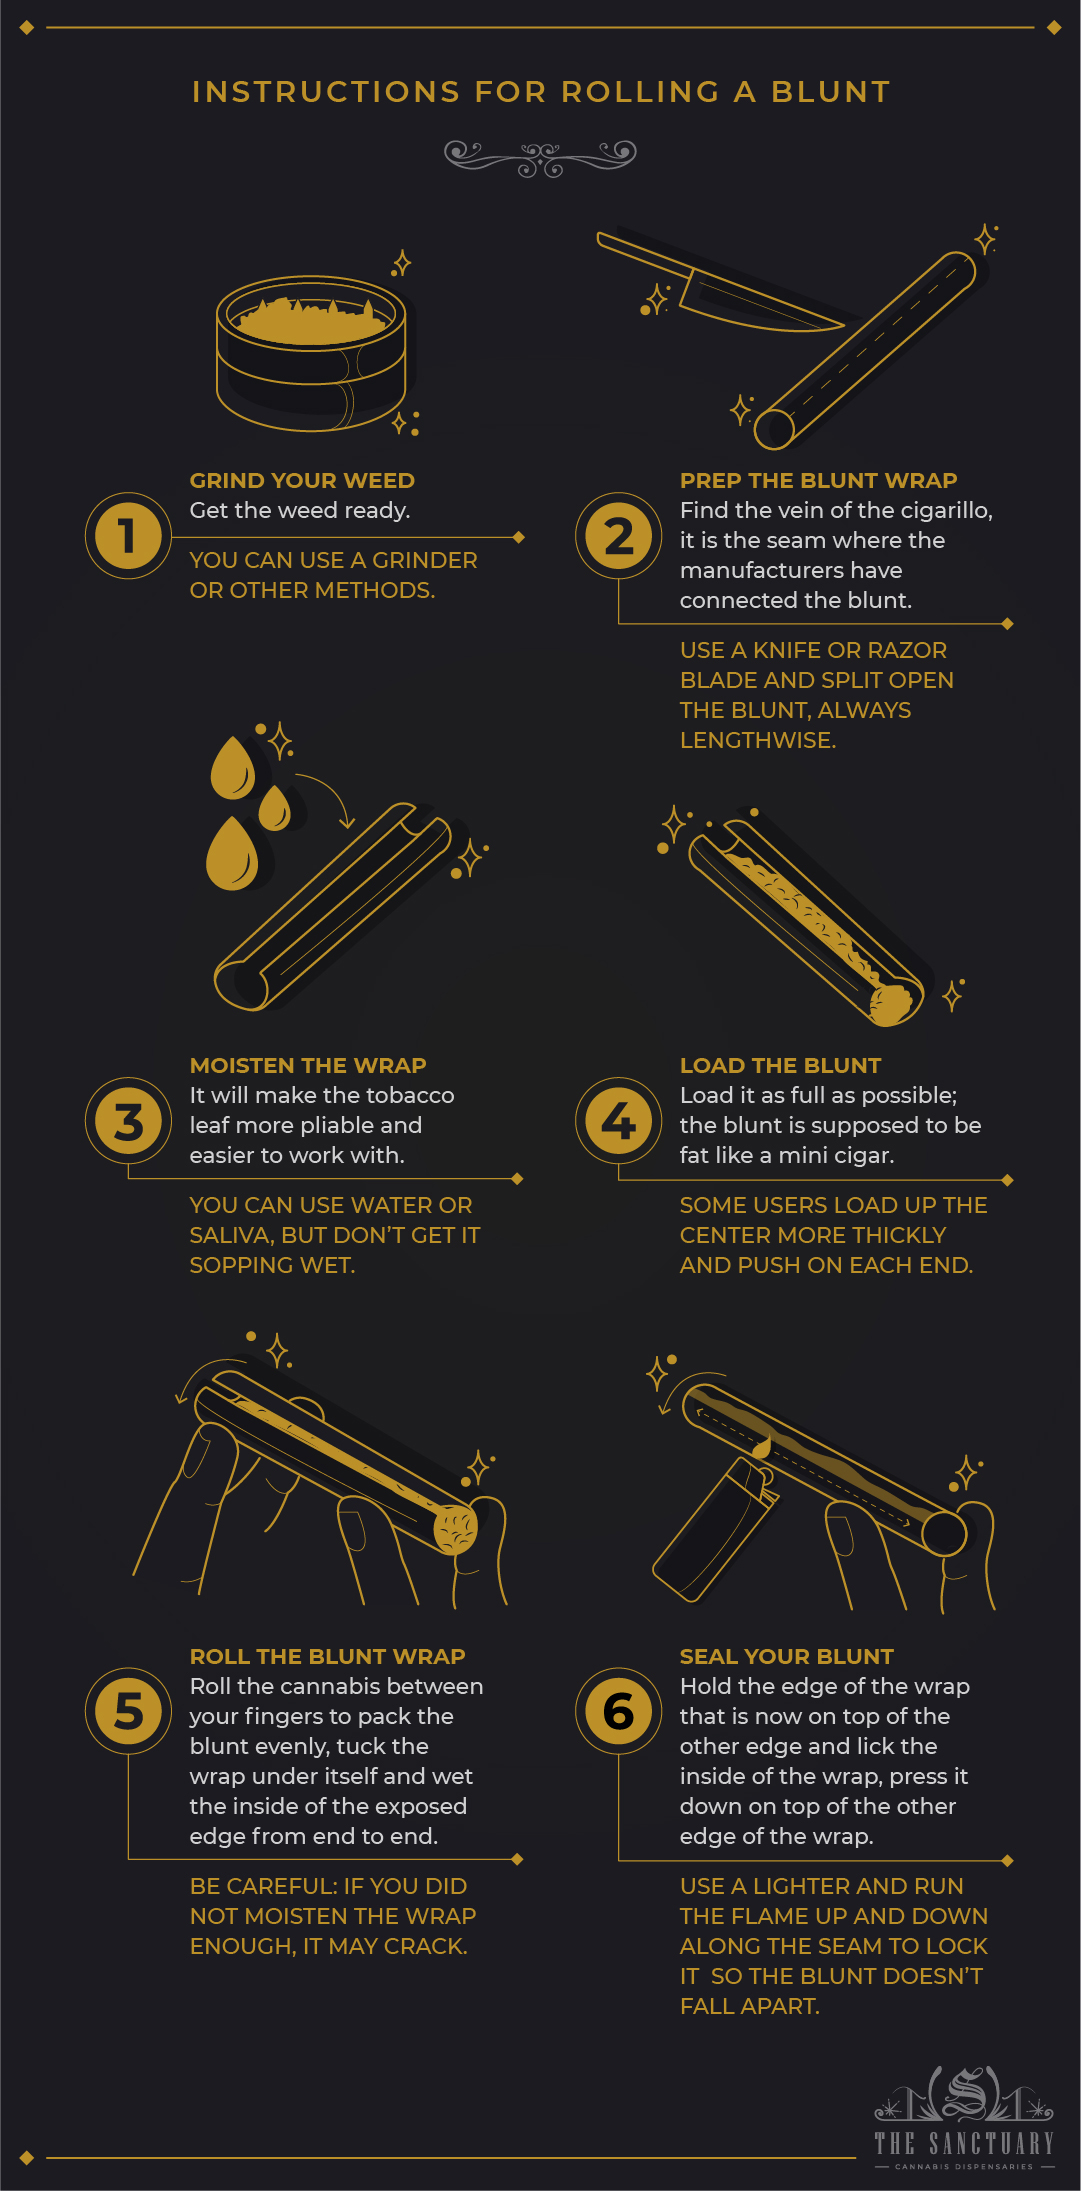 Instructions for rolling a blunt